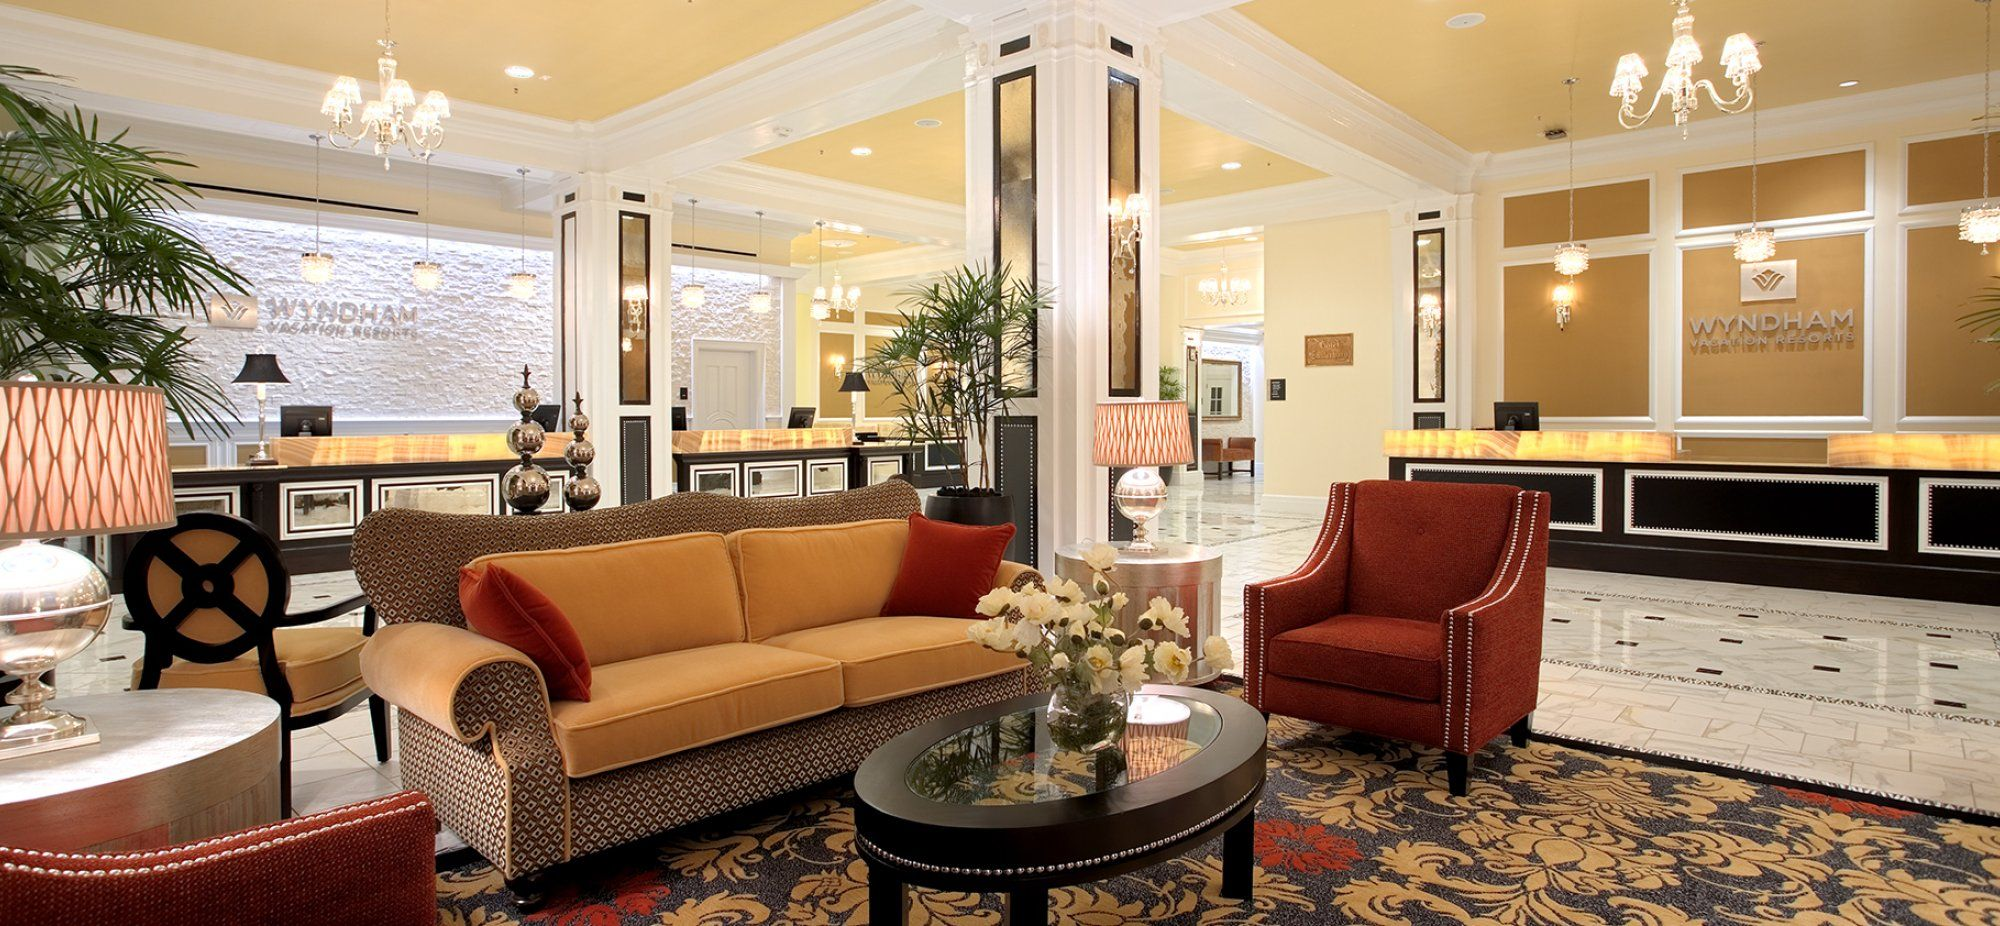 Images Of 1920 39 S Architecture And Interior Design Google